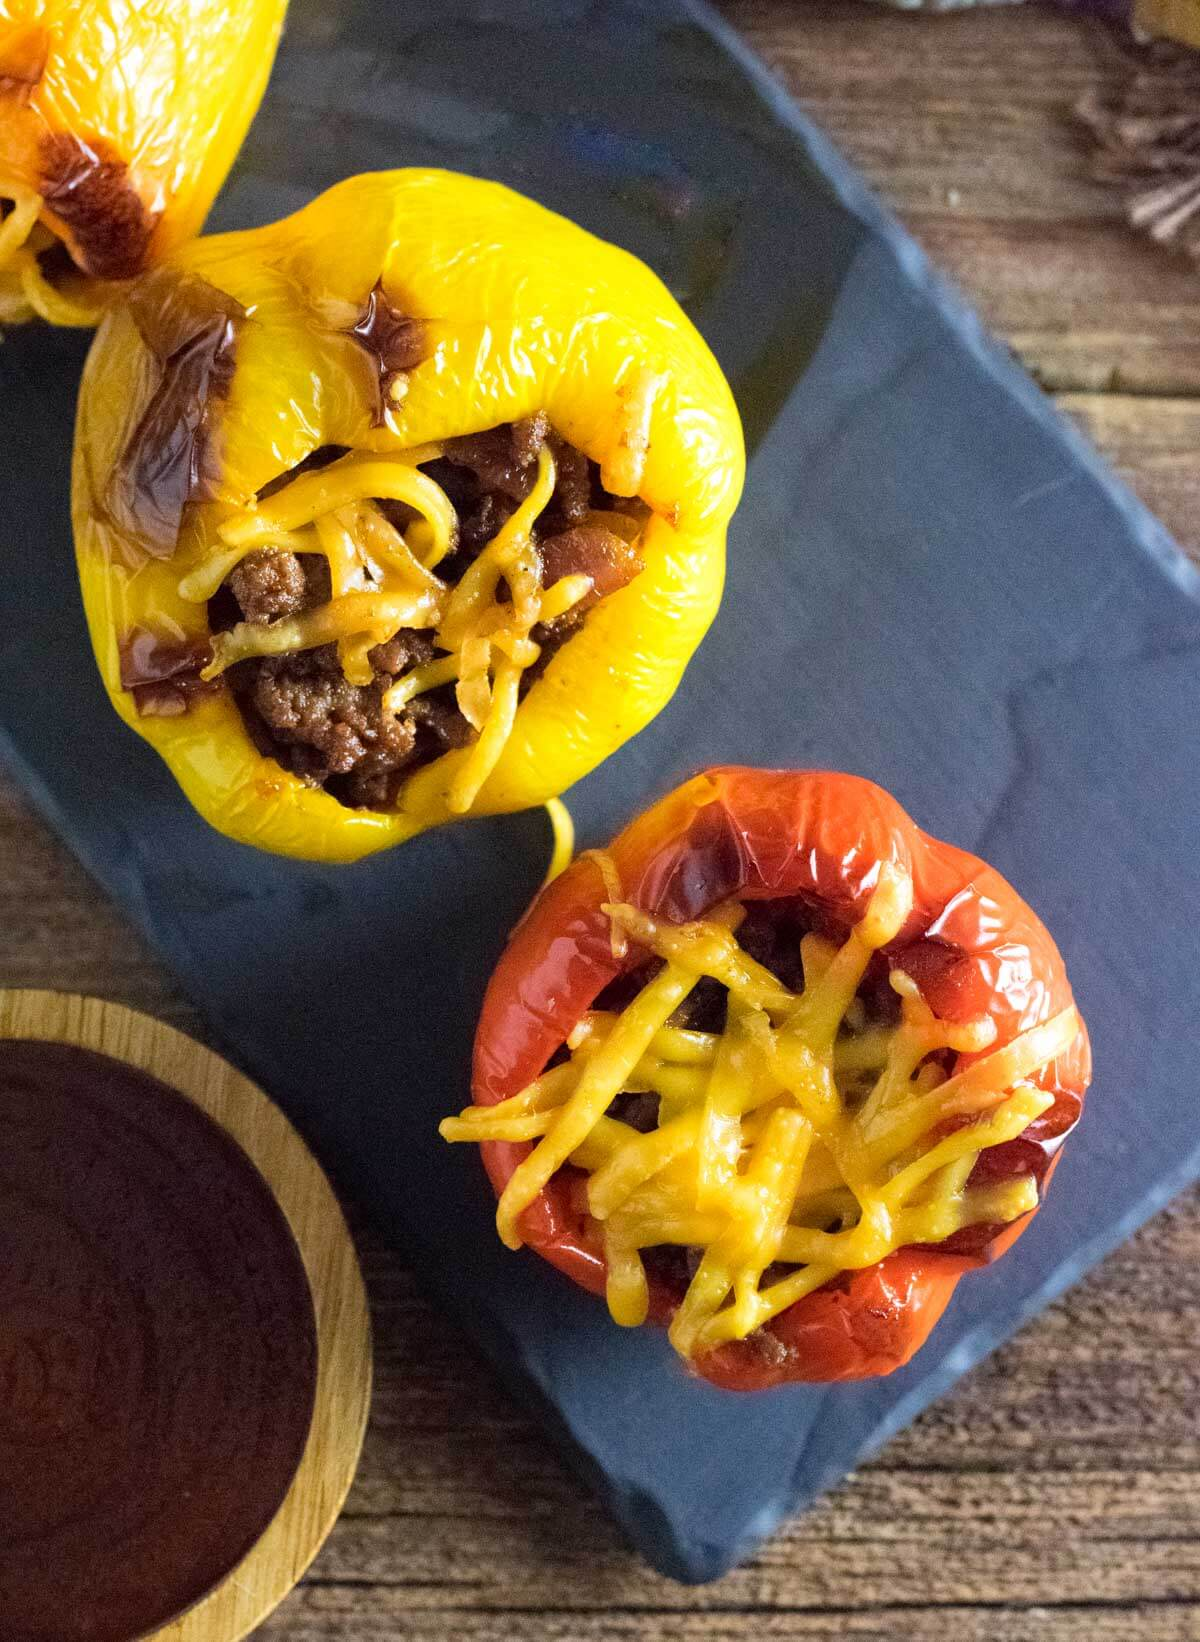 BBQ beef stuffed peppers topped with cheese.